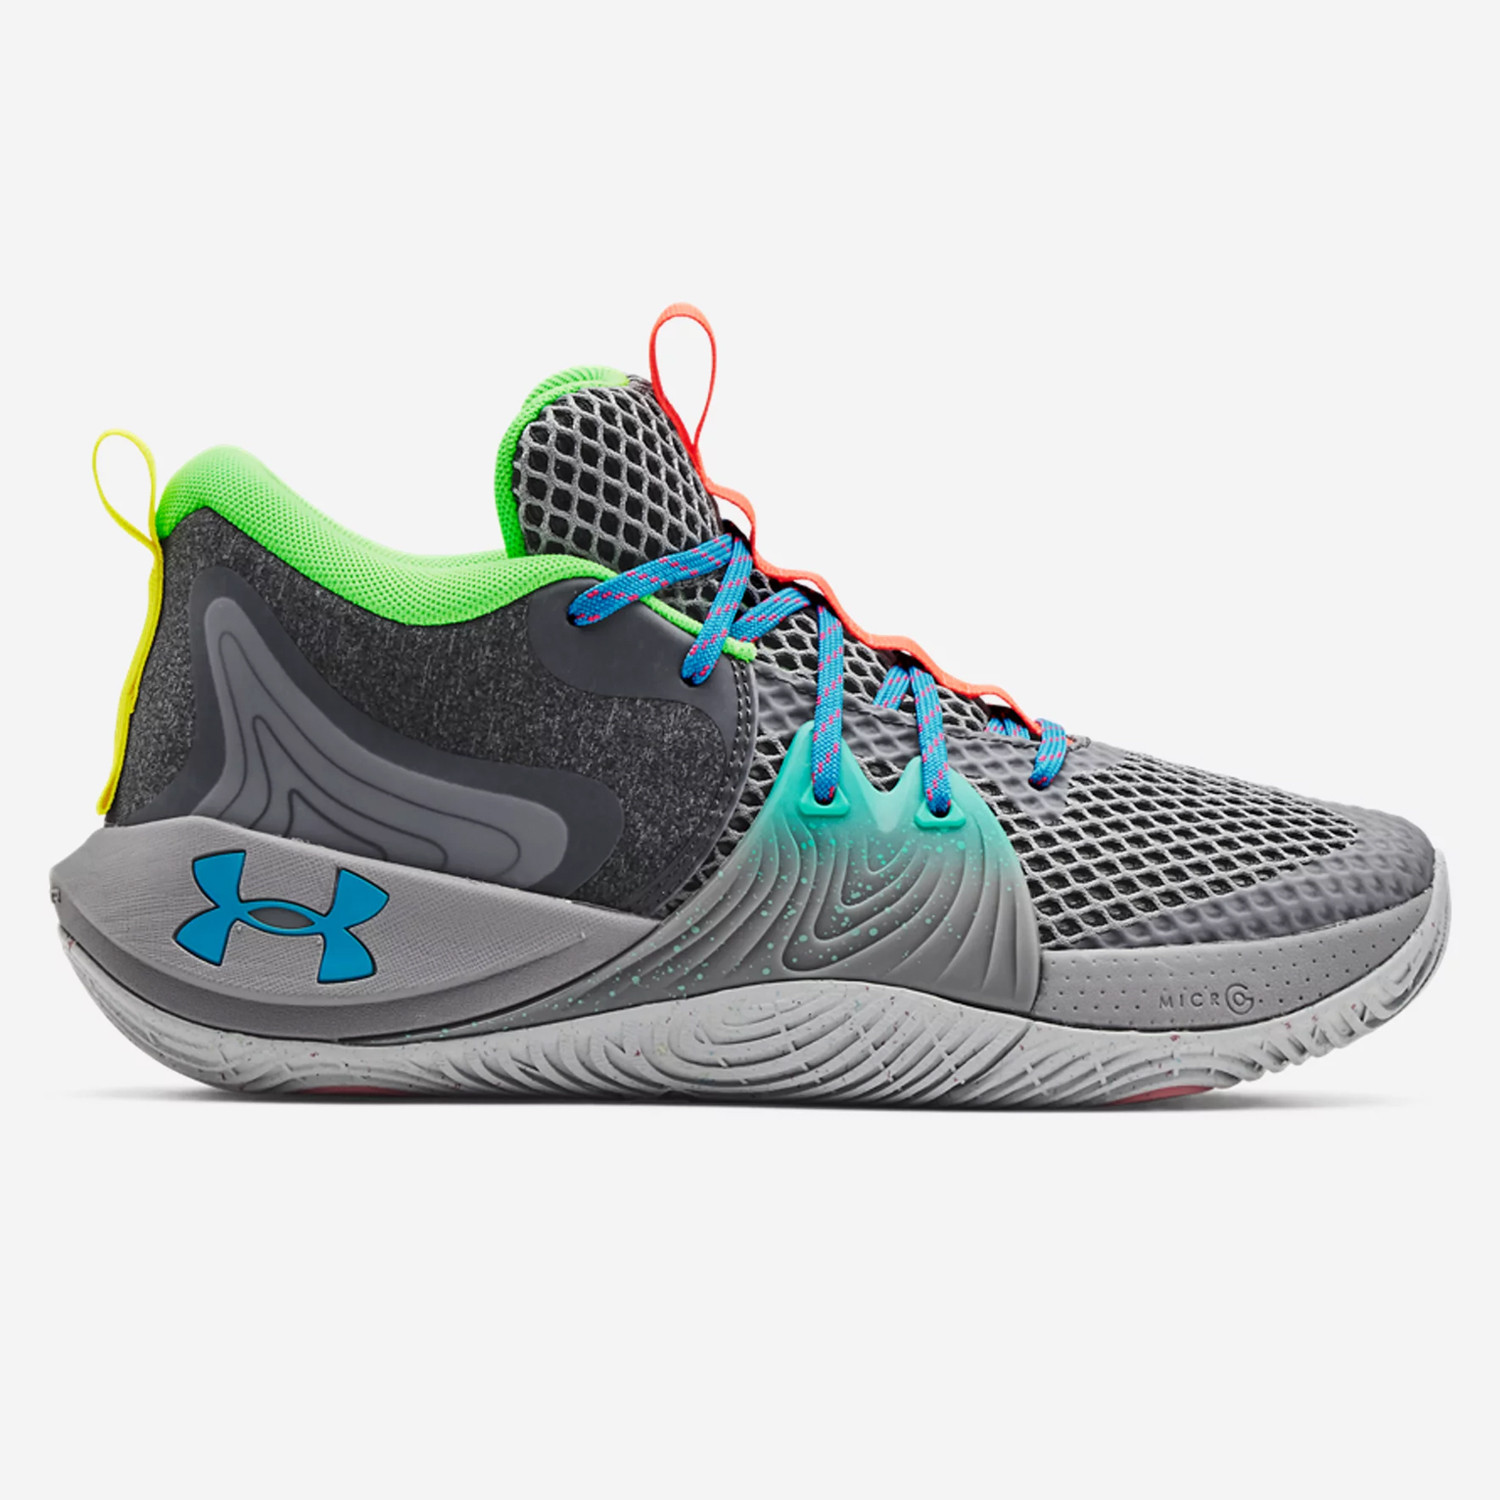 Under Armour Embiid One Gamertag Basketball Shoes (9000070943_50749)